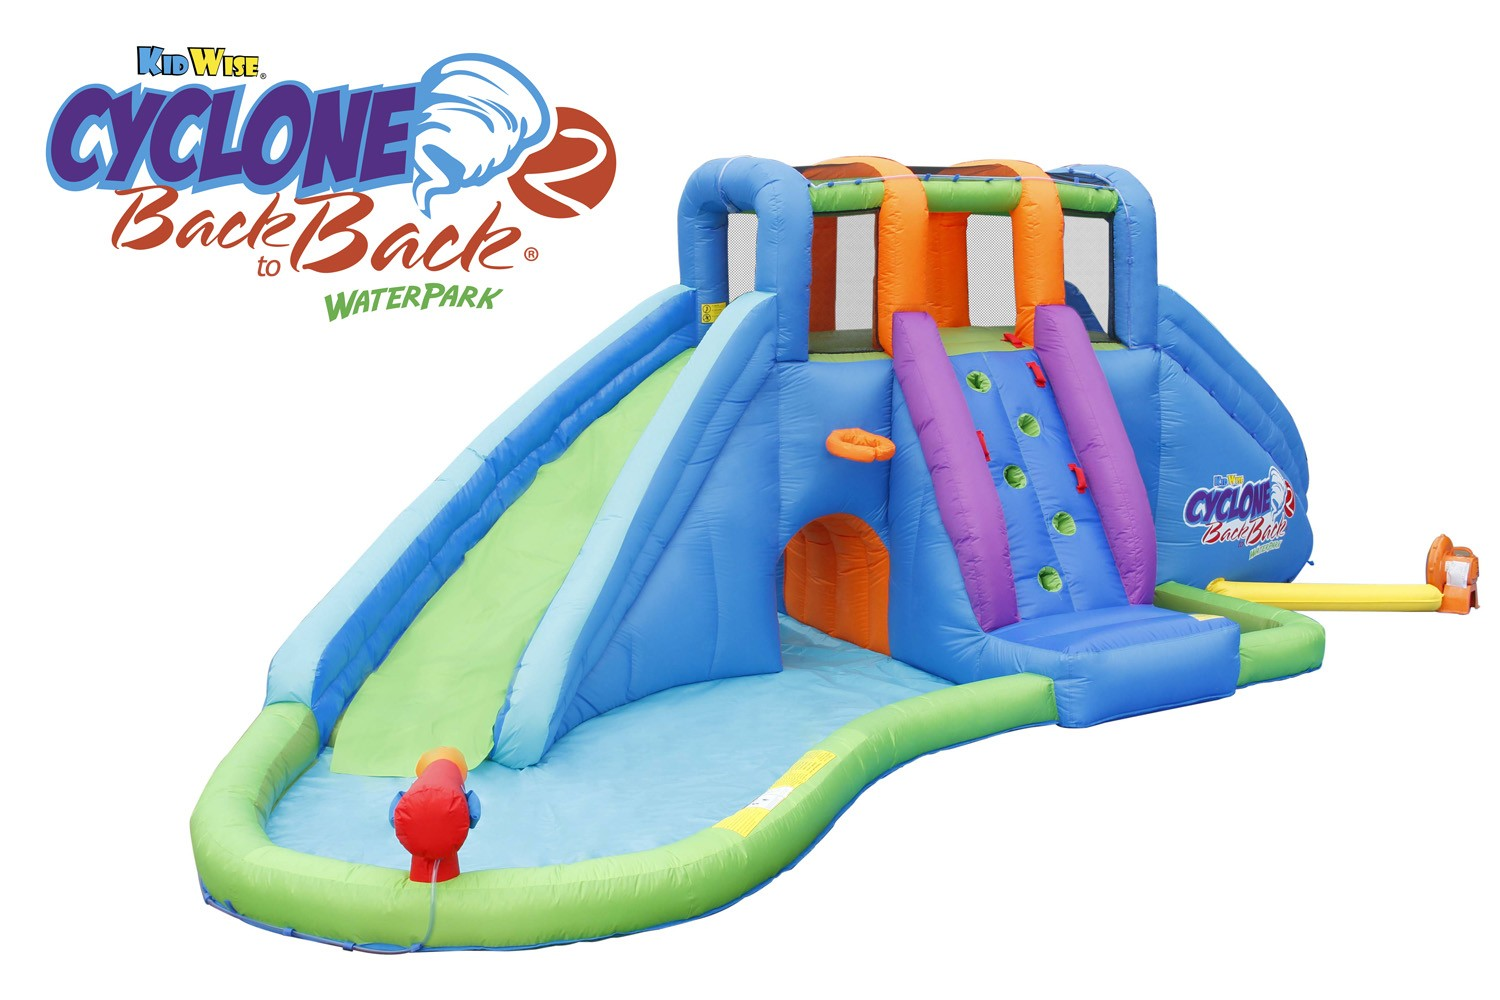 Cyclone2 Back to Back® Waterpark and Lazy River